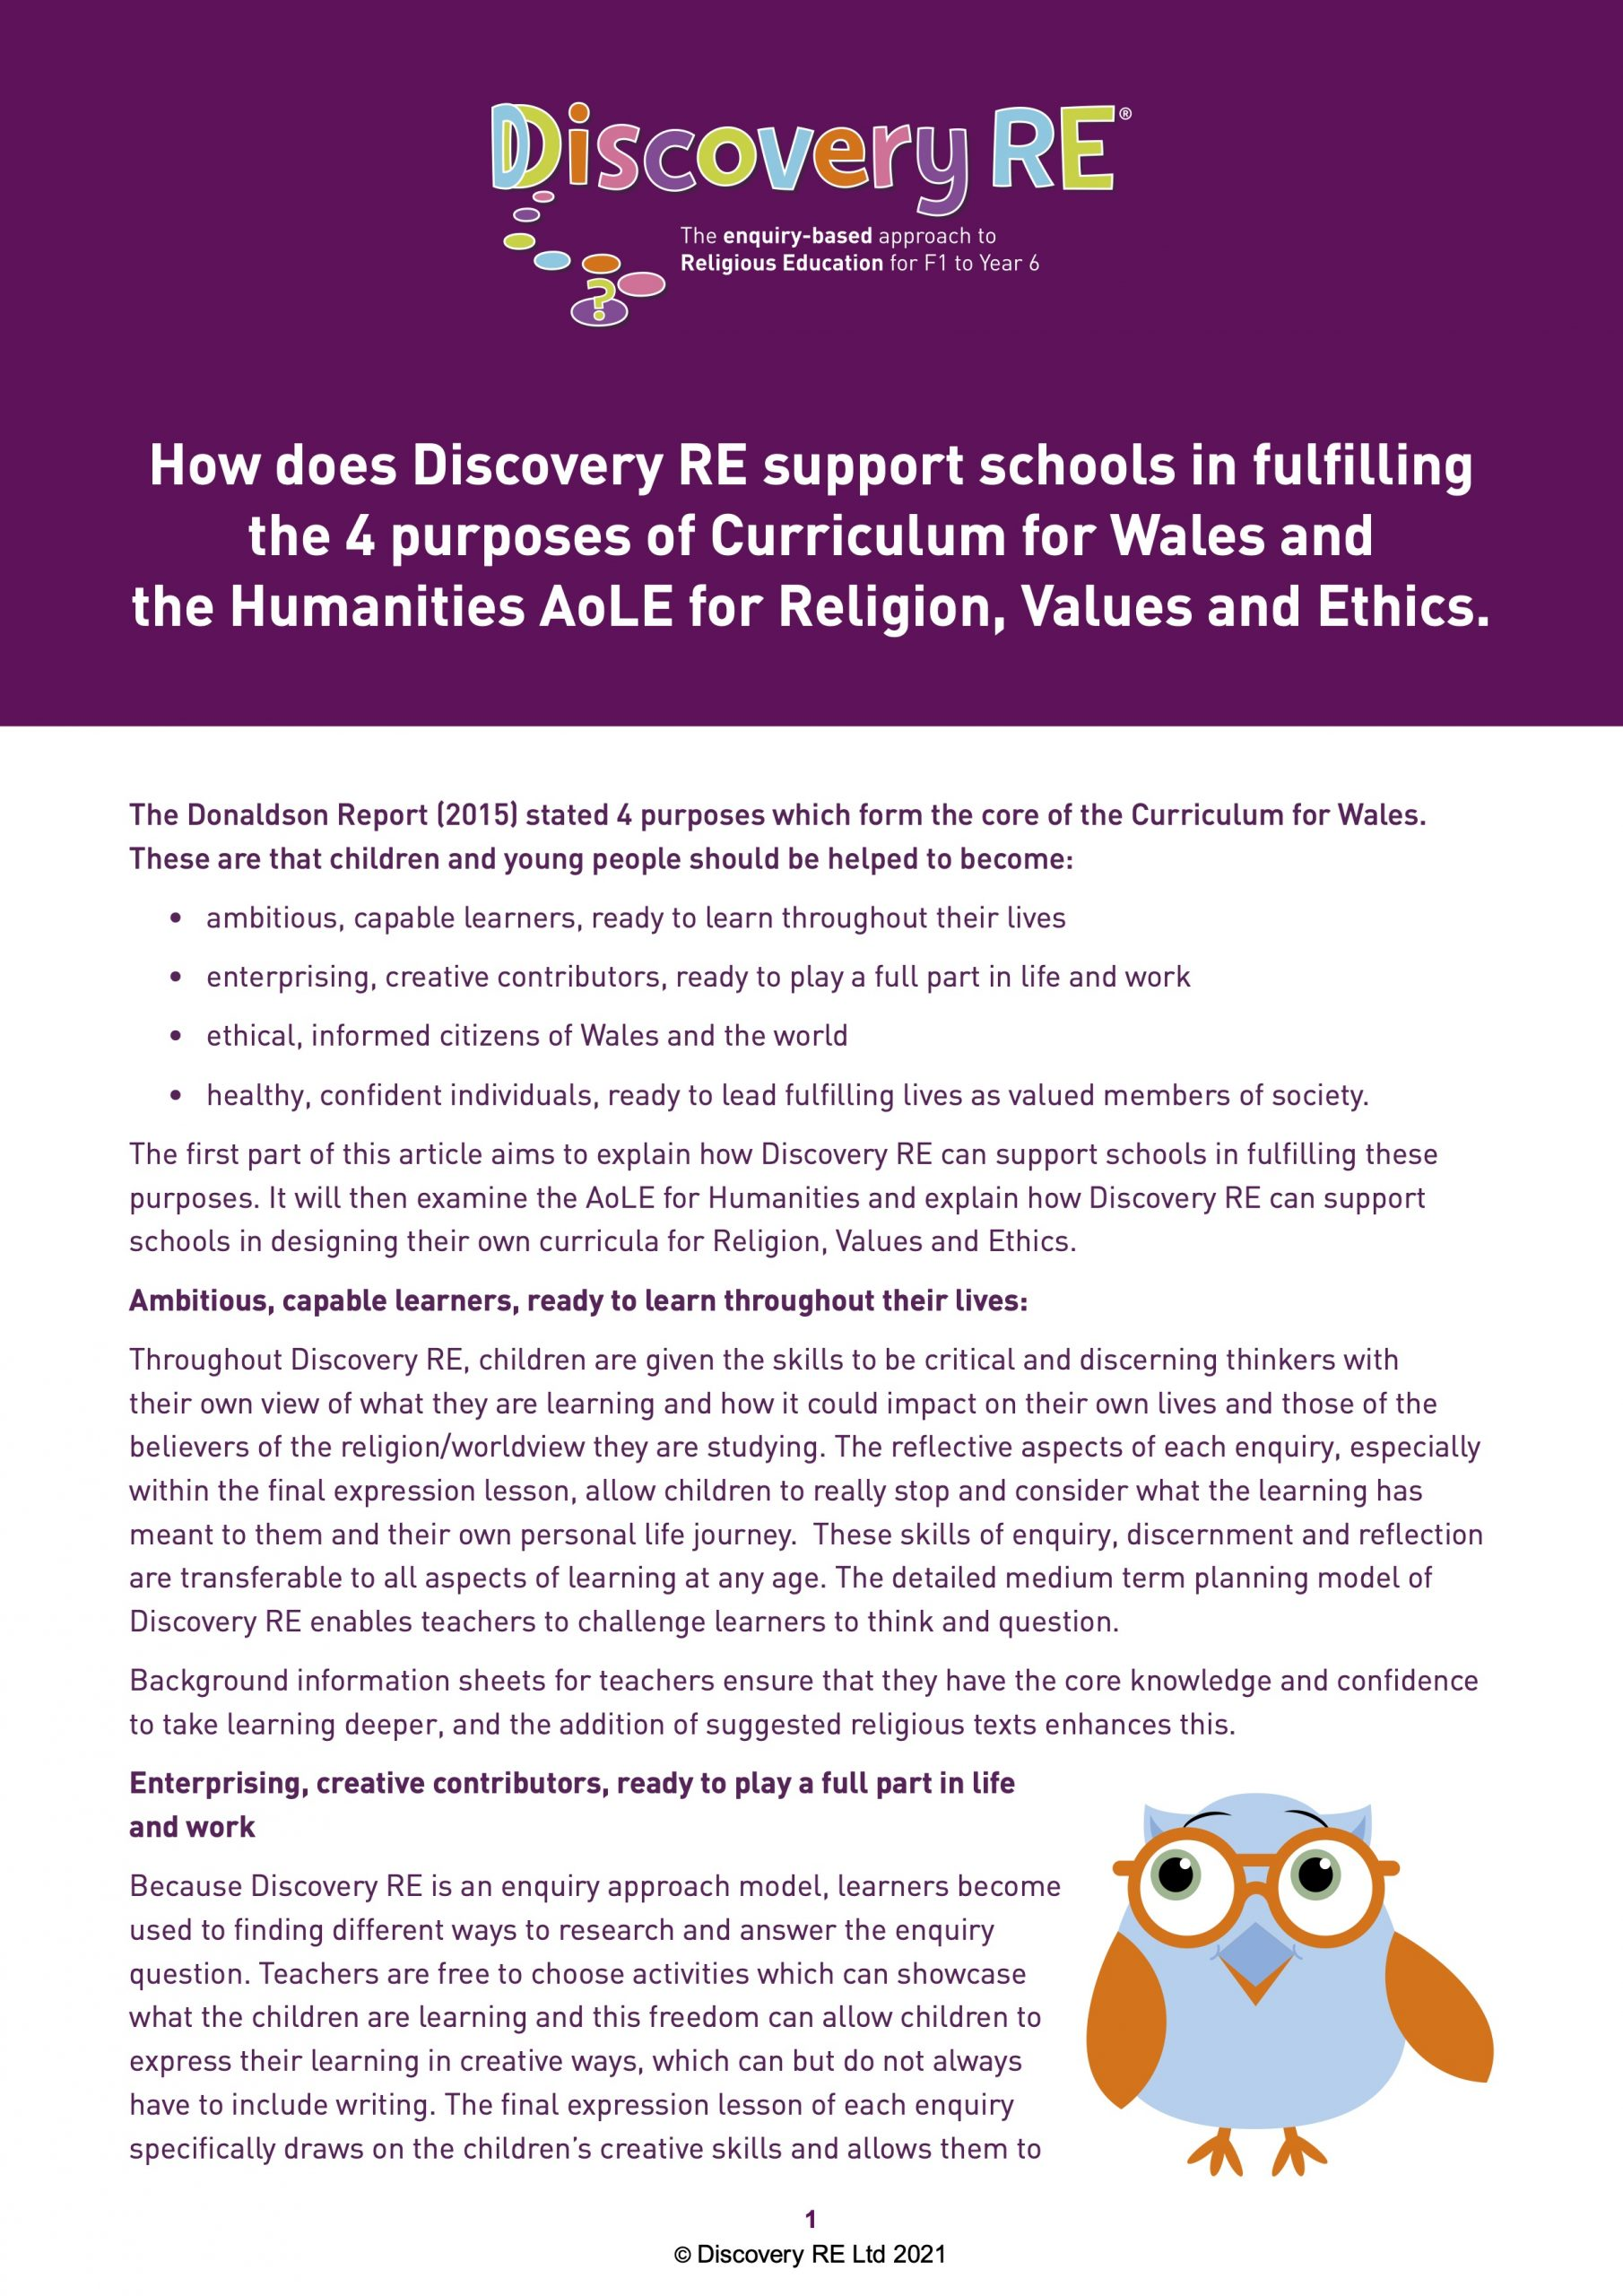 Discovery RE and Curriculum for Wales and Humanities AoLE for Religion, Values and Ethics